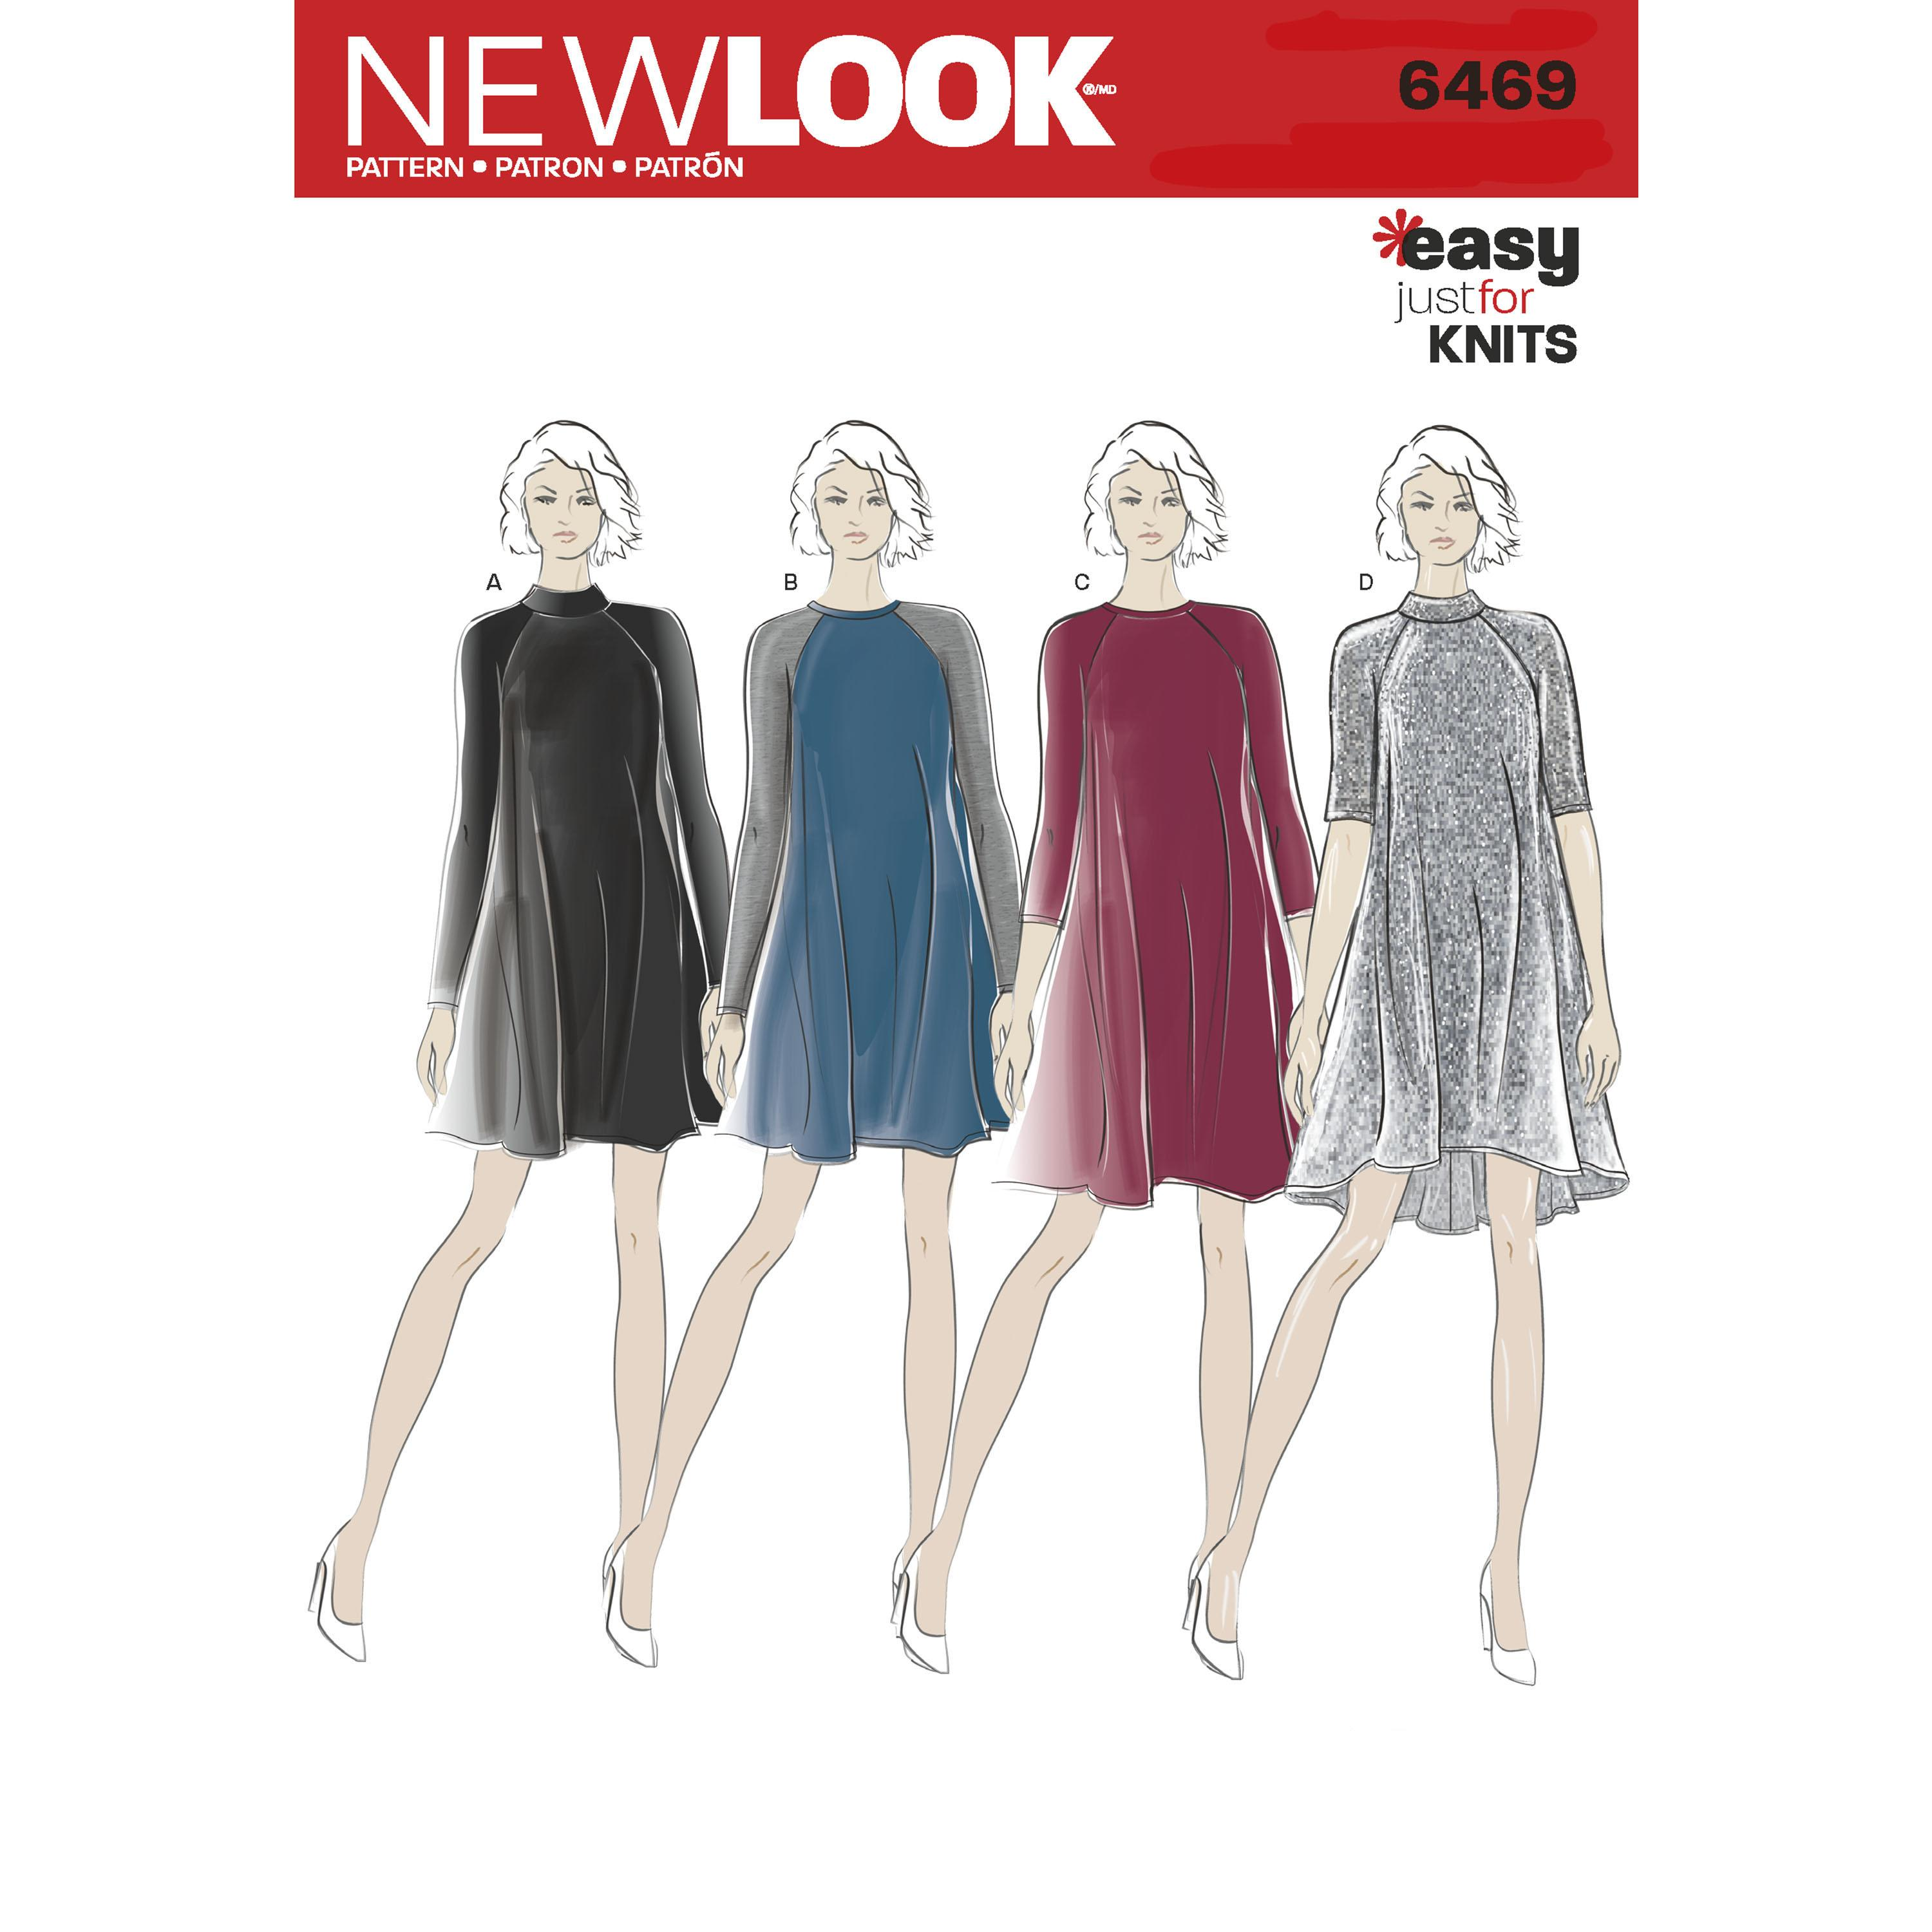 NewLook N6469 Misses' Easy Knit Dress with Length and Sleeve Variations